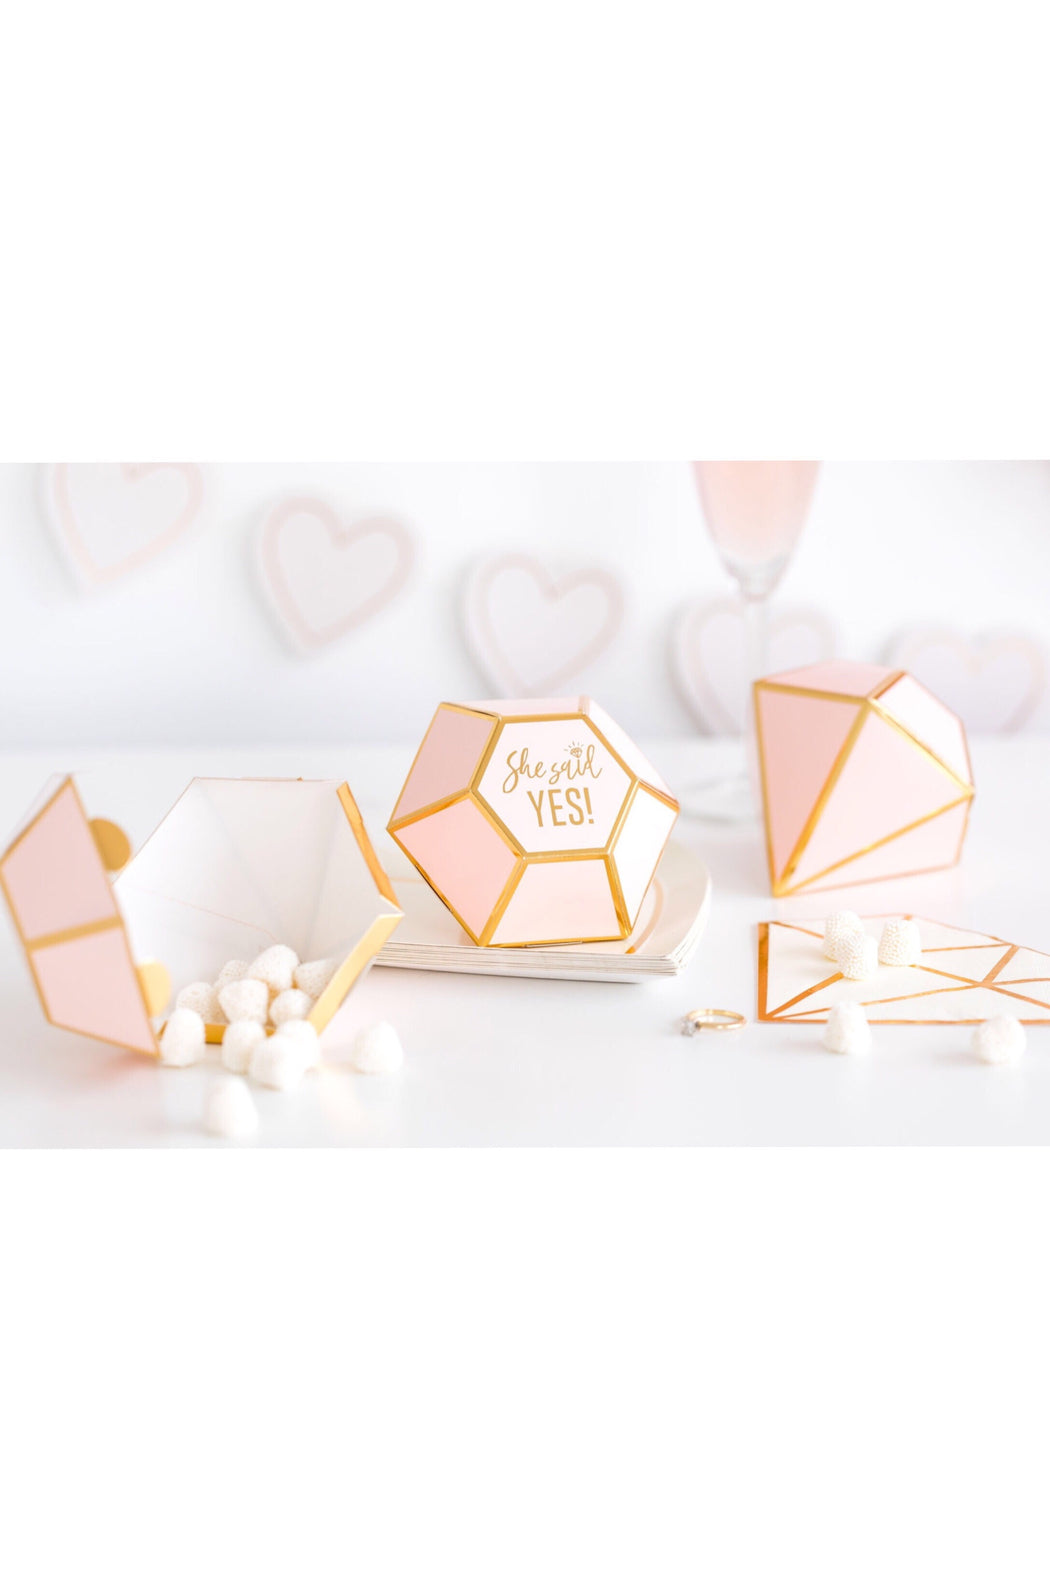 Bride To Be Favor Boxes, Partyware, My Mind's Eye - 3LittlePicks